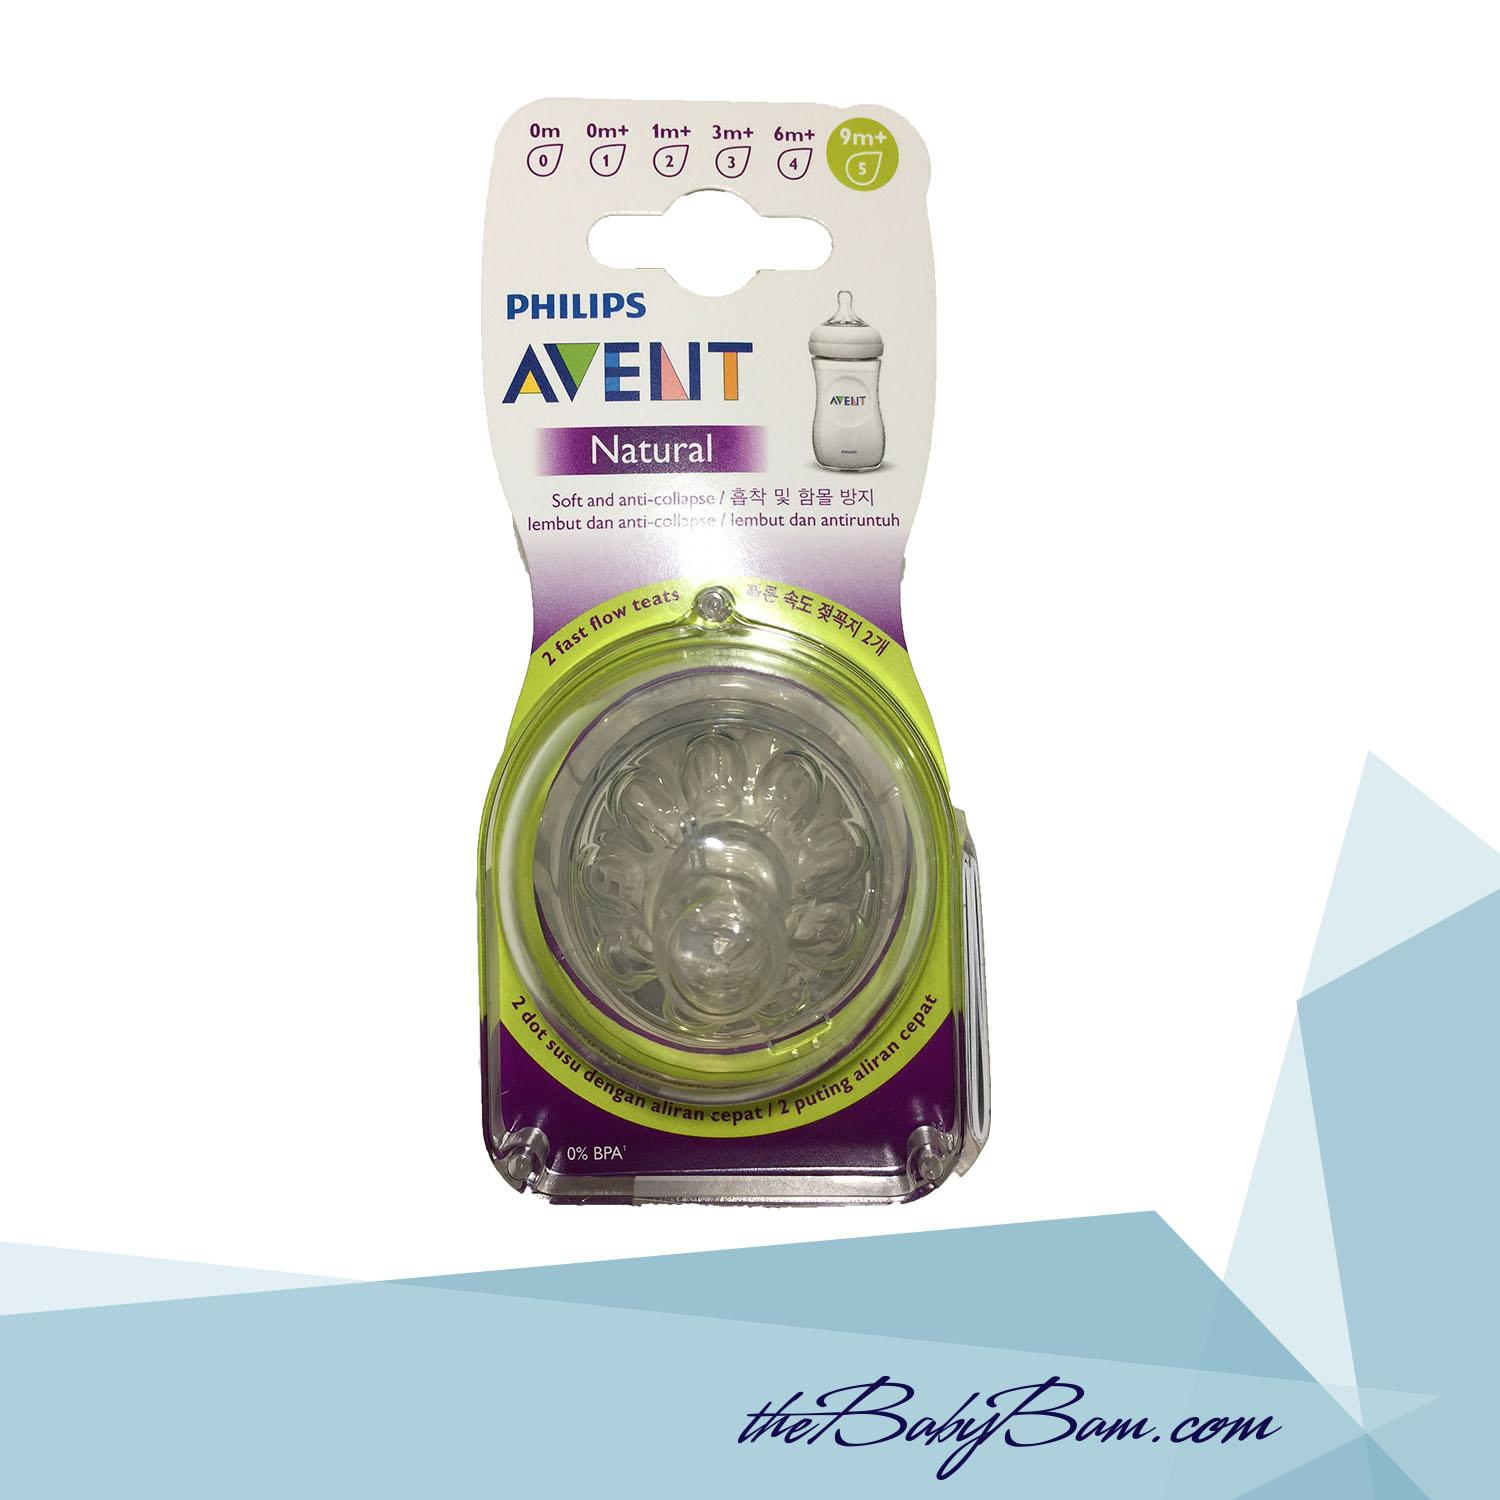 Philips Avent Natural Nipple / Teats 9m+ 2pcs Fast Flow By Thebabybam.